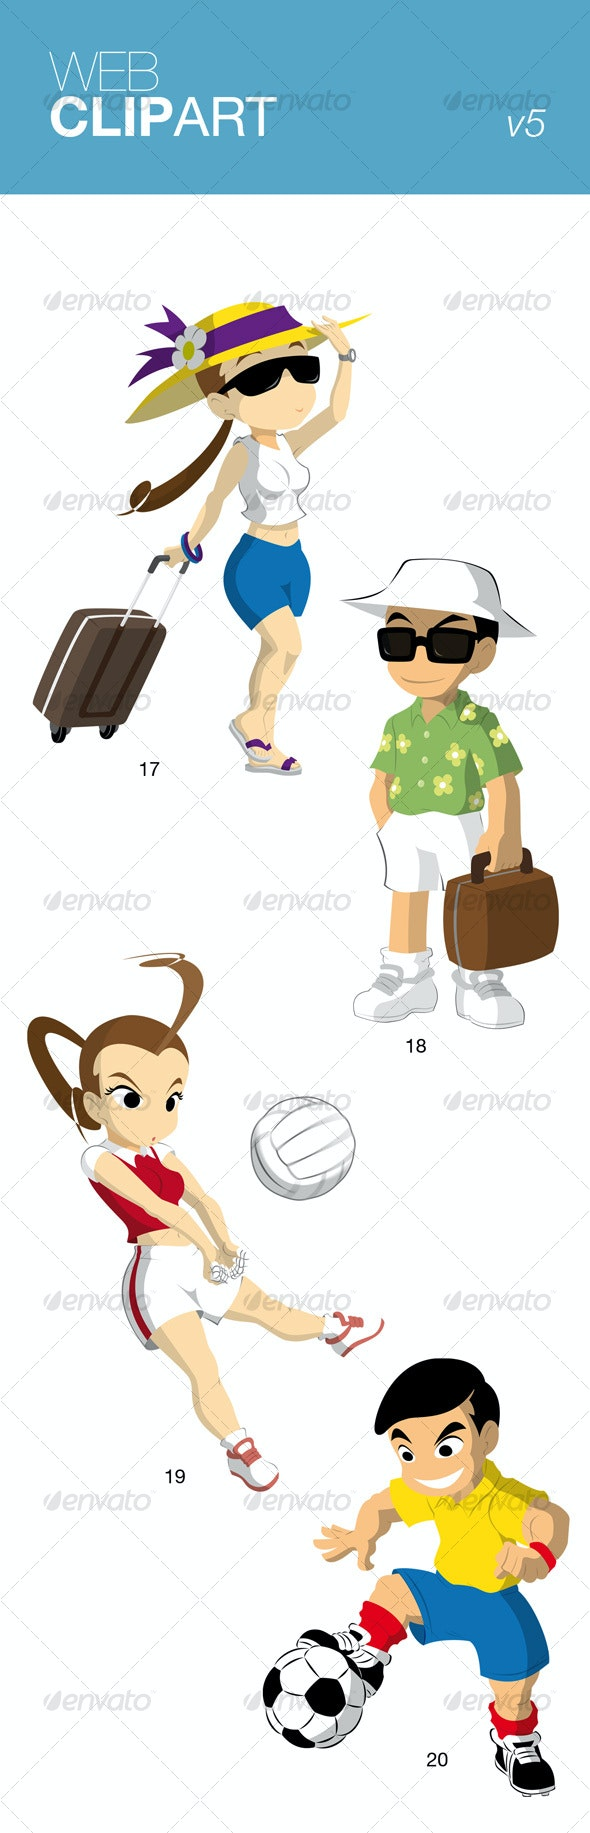 Web Clip Art v5 - People Characters